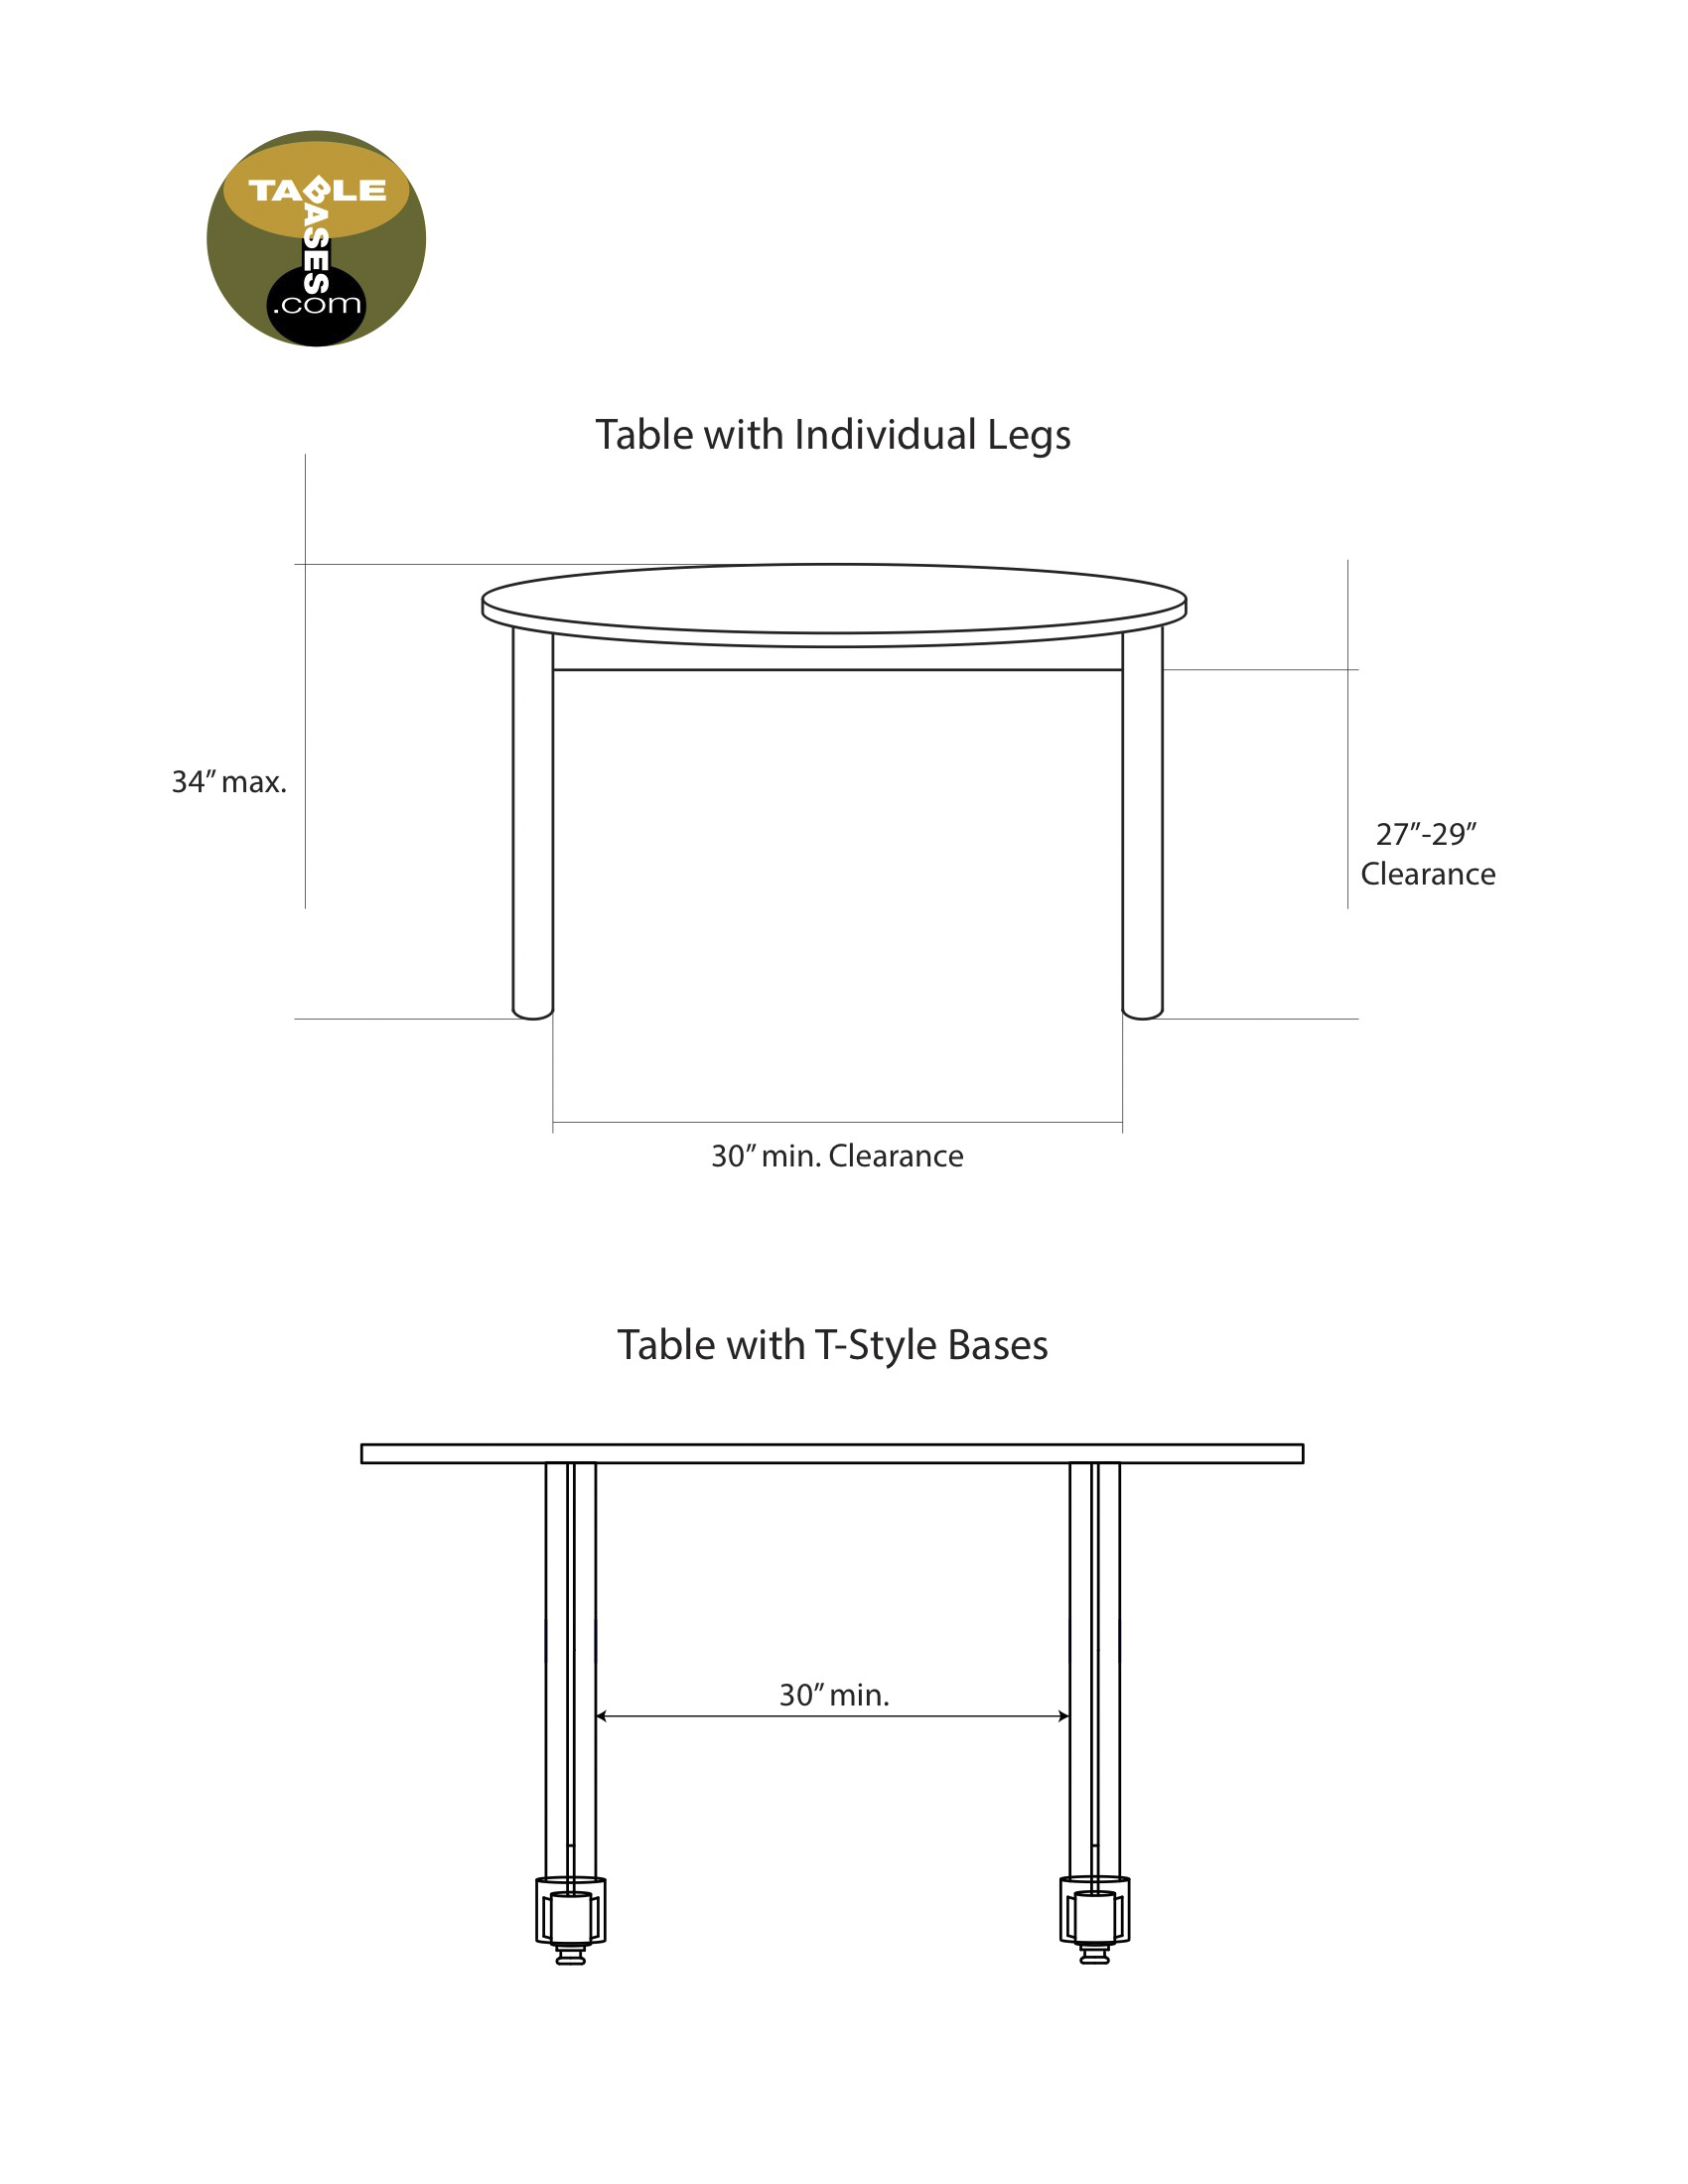 Accessible Dining Banquet And Bar Tables And Bases